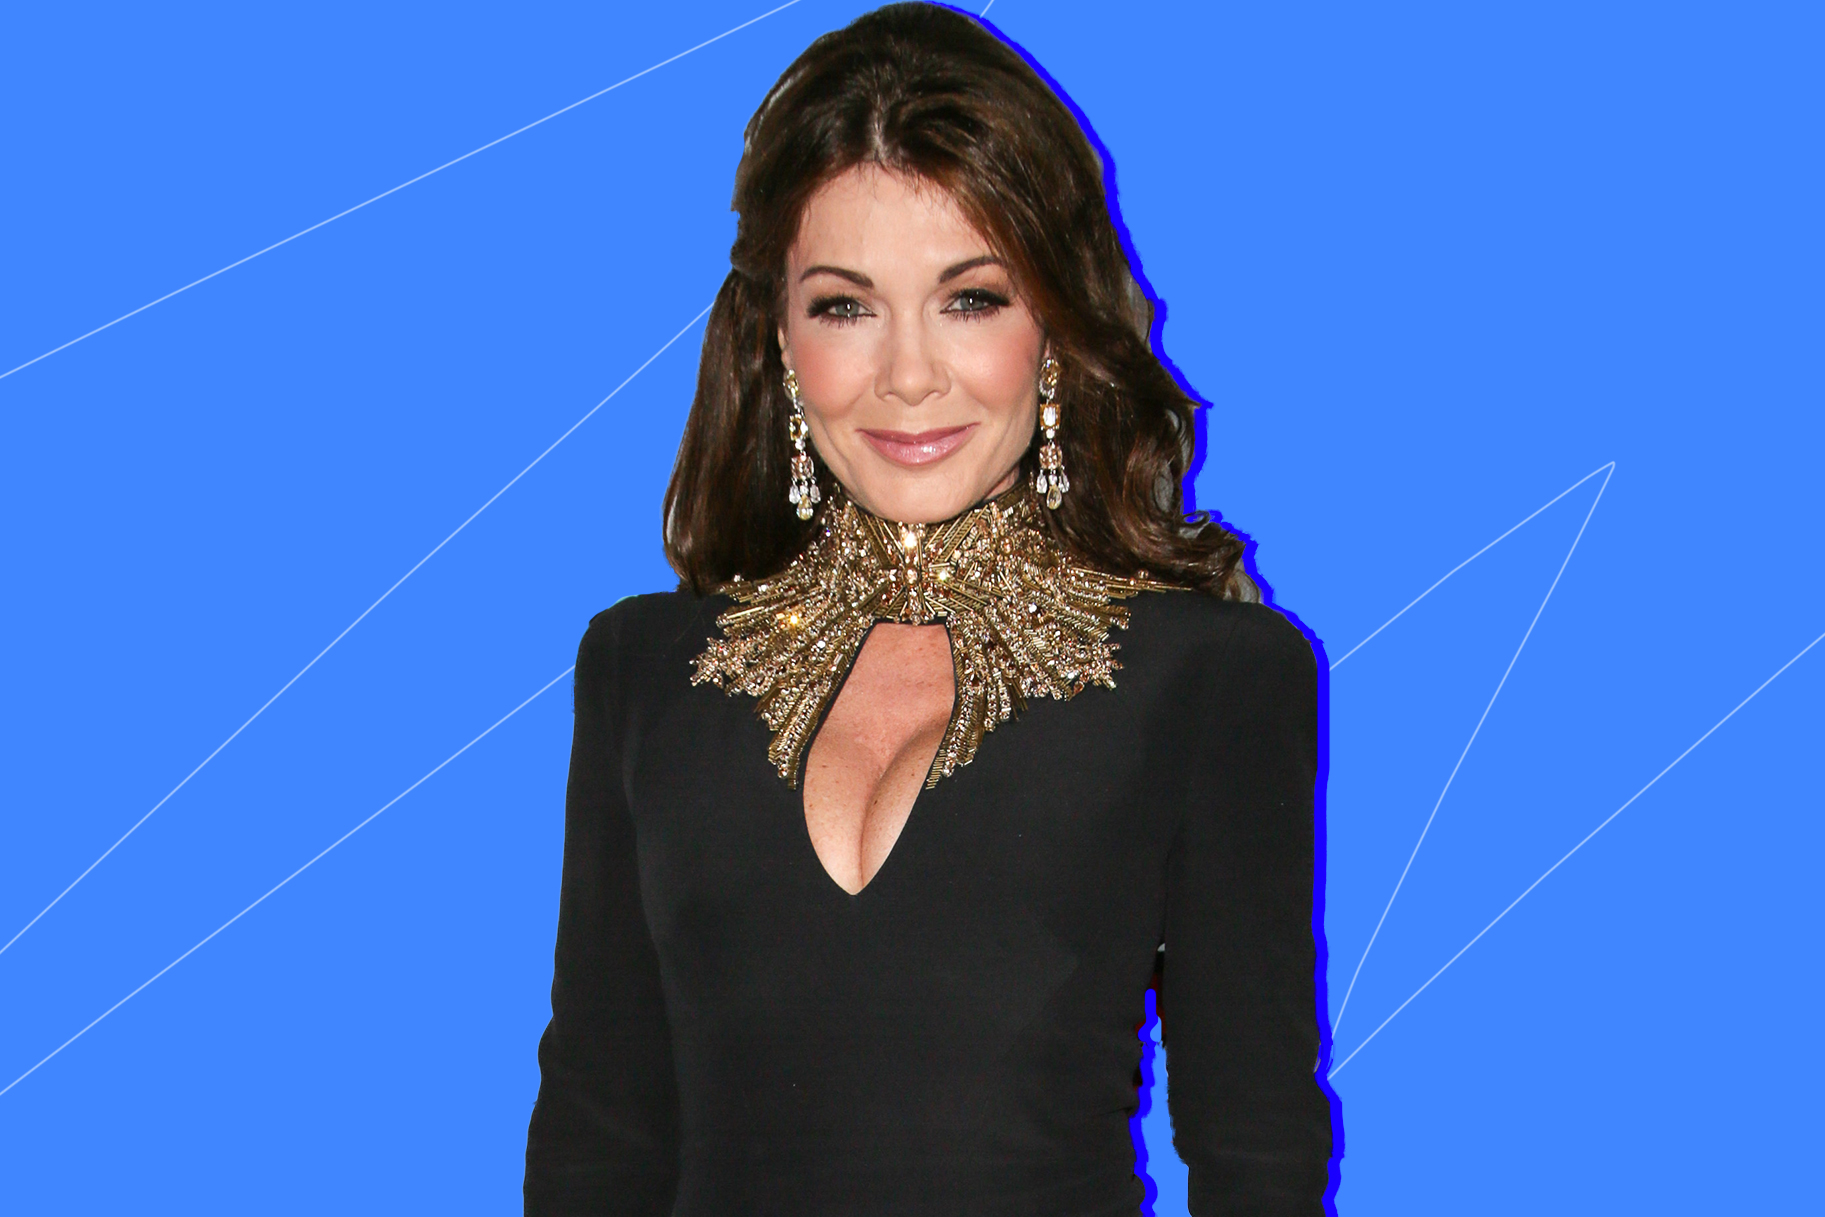 lisa-vanderpump-is-working-on-a-vanderpump-rules-spinoff